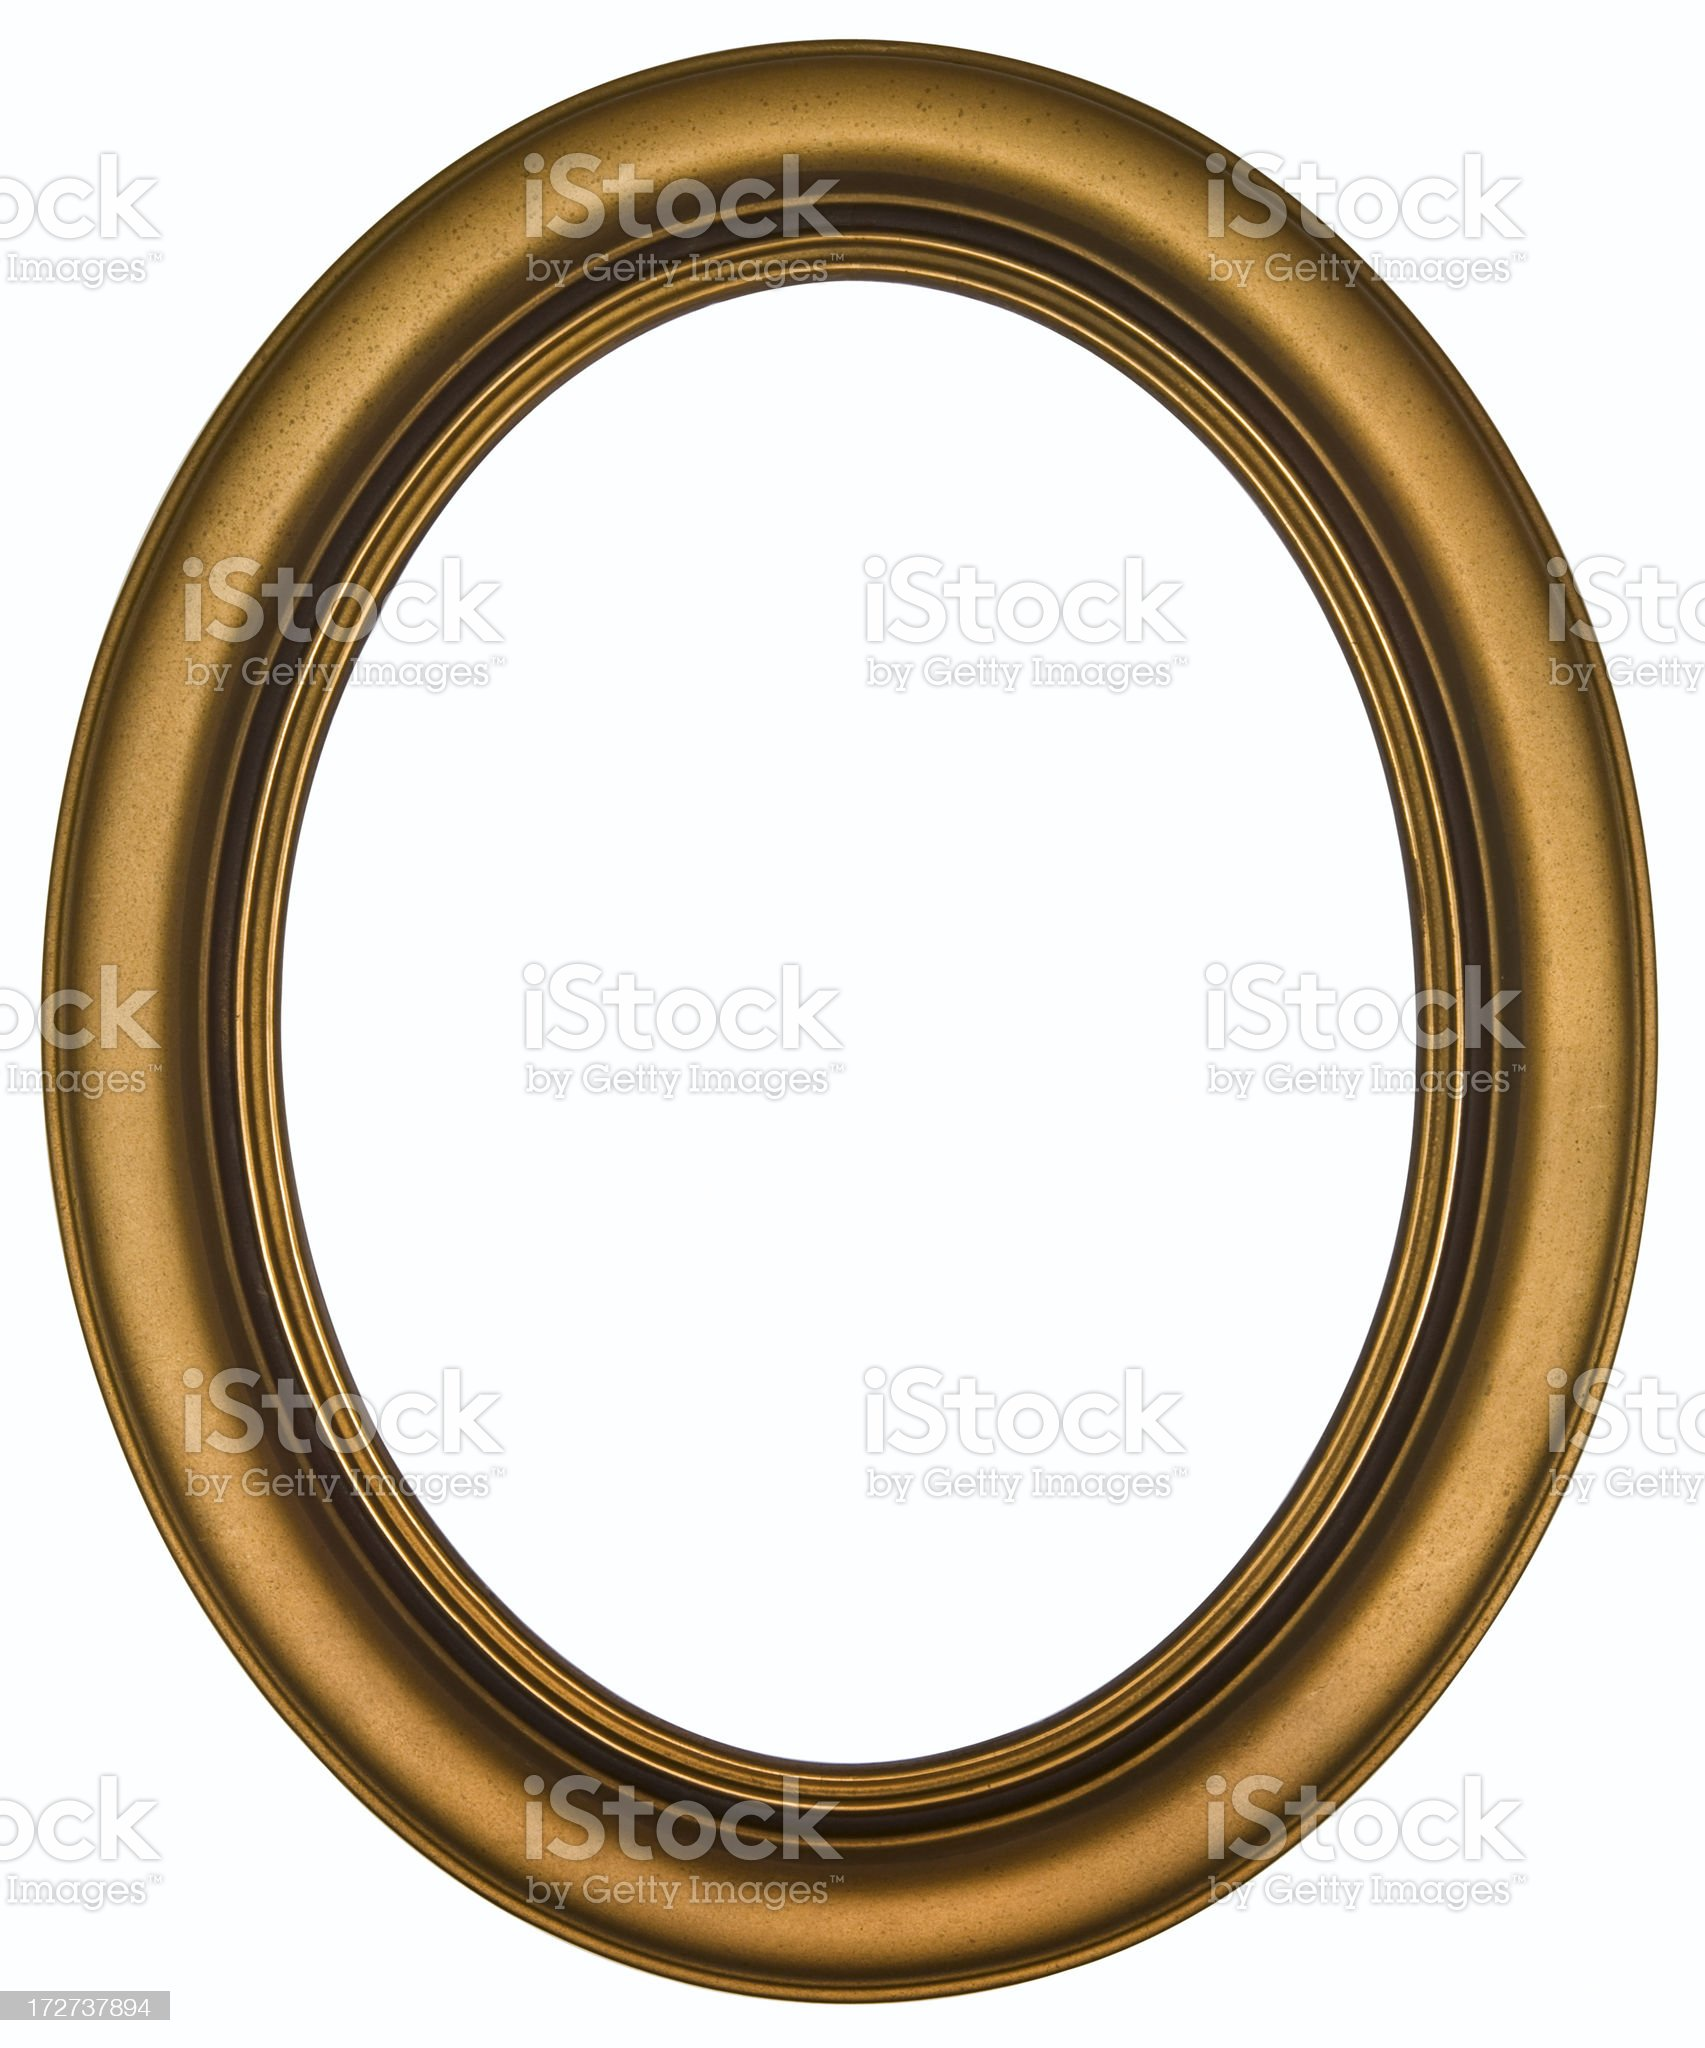 Antique Gold Oval Picture Frame.  Isolated on White Clipping Path royalty-free stock photo